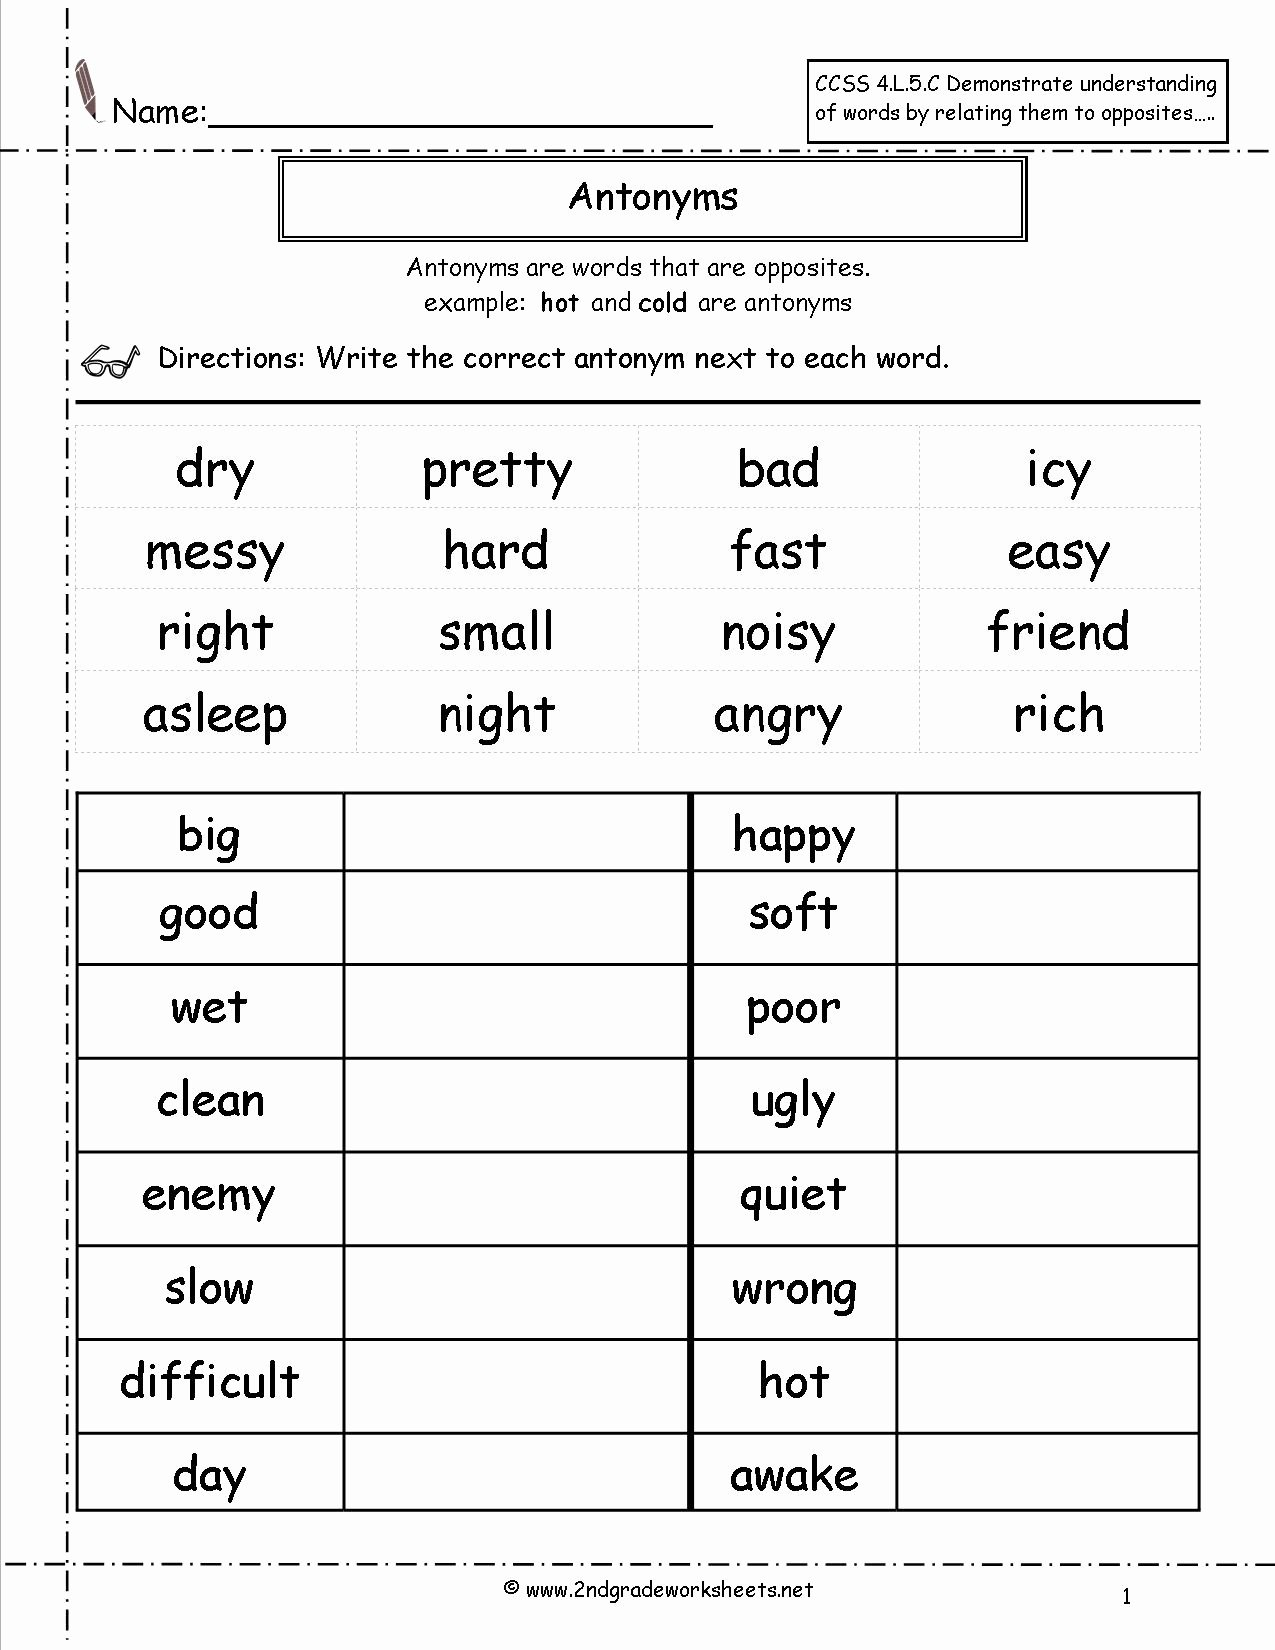 50 2nd grade vocabulary worksheet chessmuseum template library. Black Bedroom Furniture Sets. Home Design Ideas